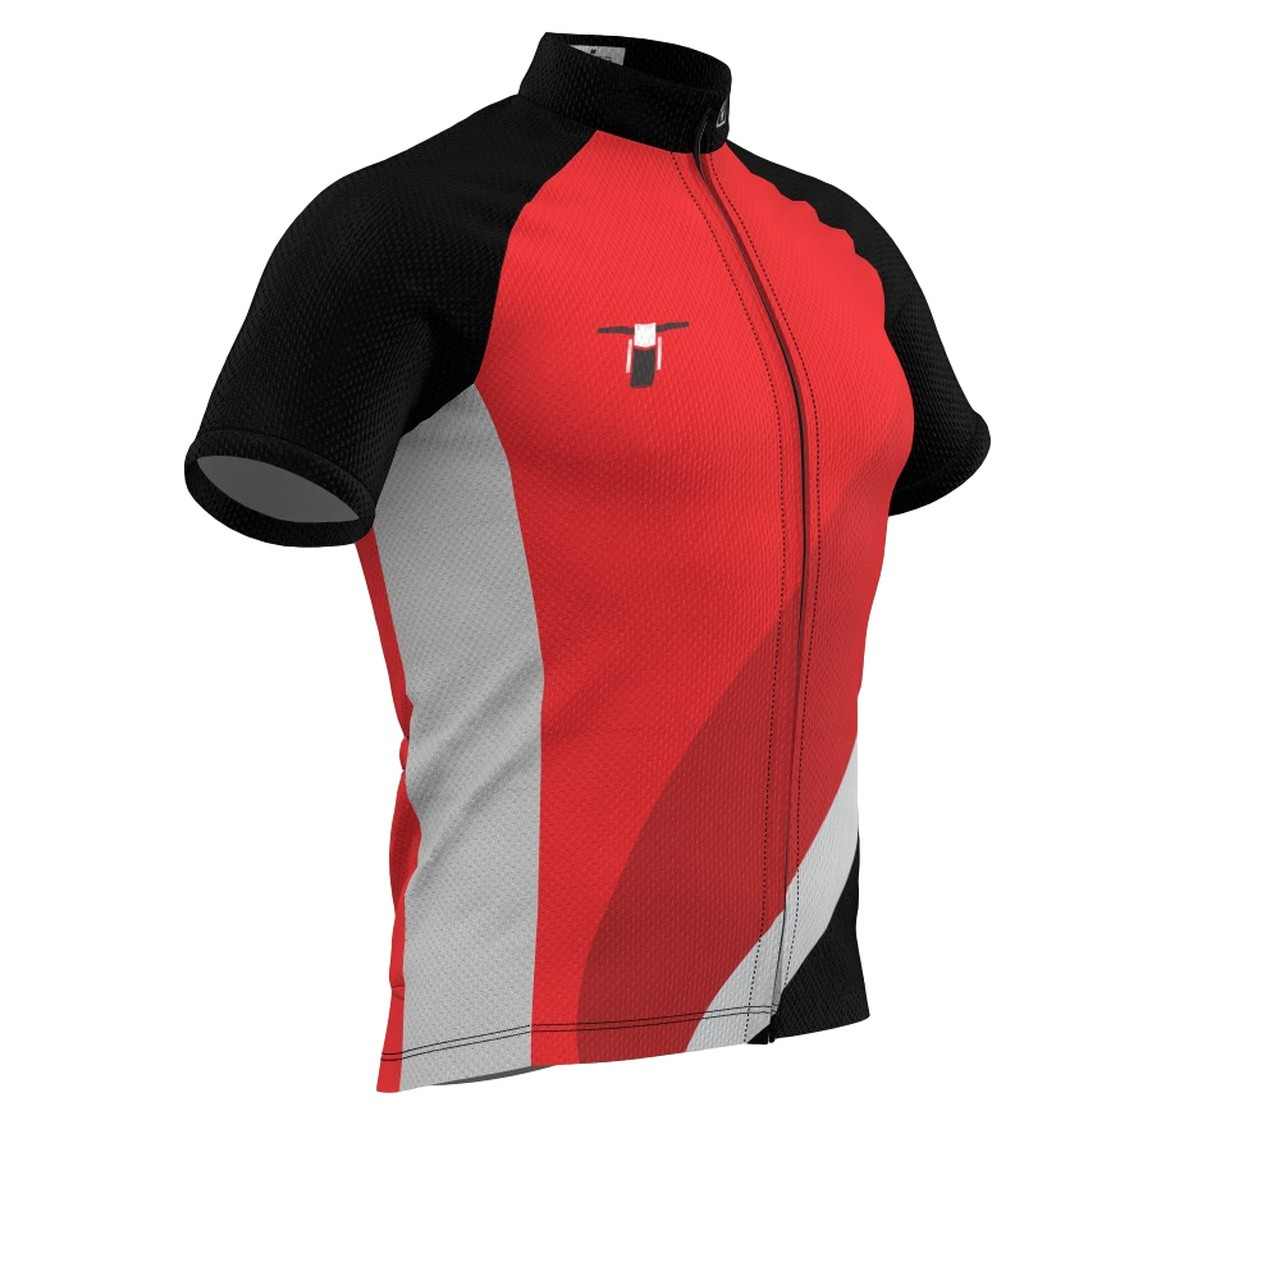 Camisa Bike Tribos e Trilhas Dry Tech Red